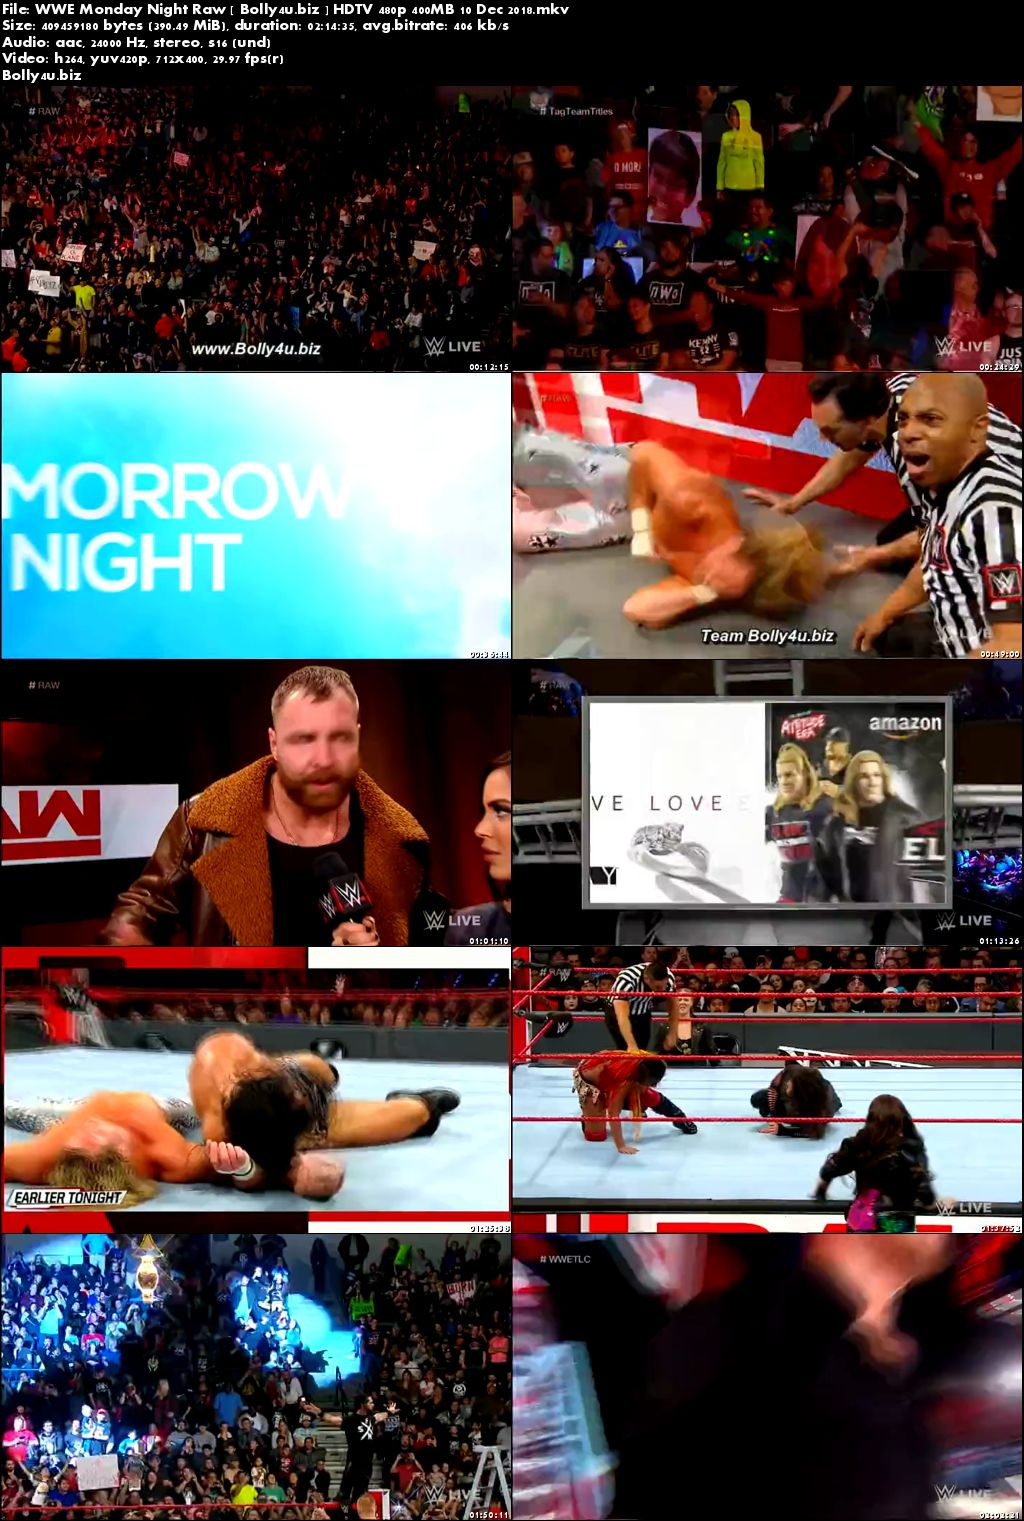 WWE Monday Night Raw HDTV 480p 400MB 10 Dec 2018 Download